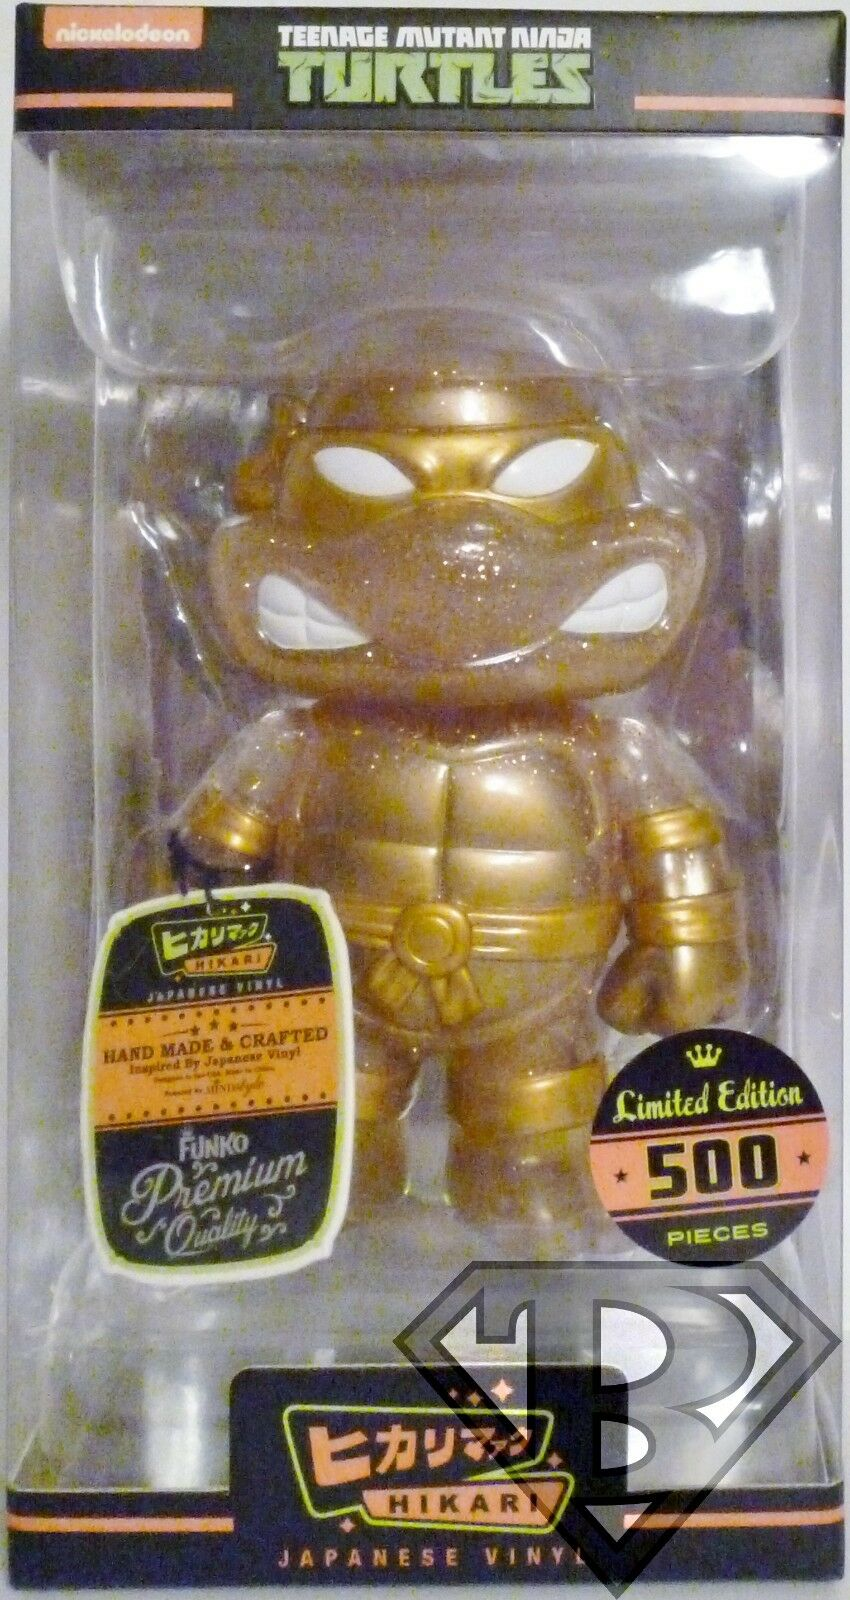 Teenage Mutant Ninja Turtles Hikari Sofubi Gold Glitter 6